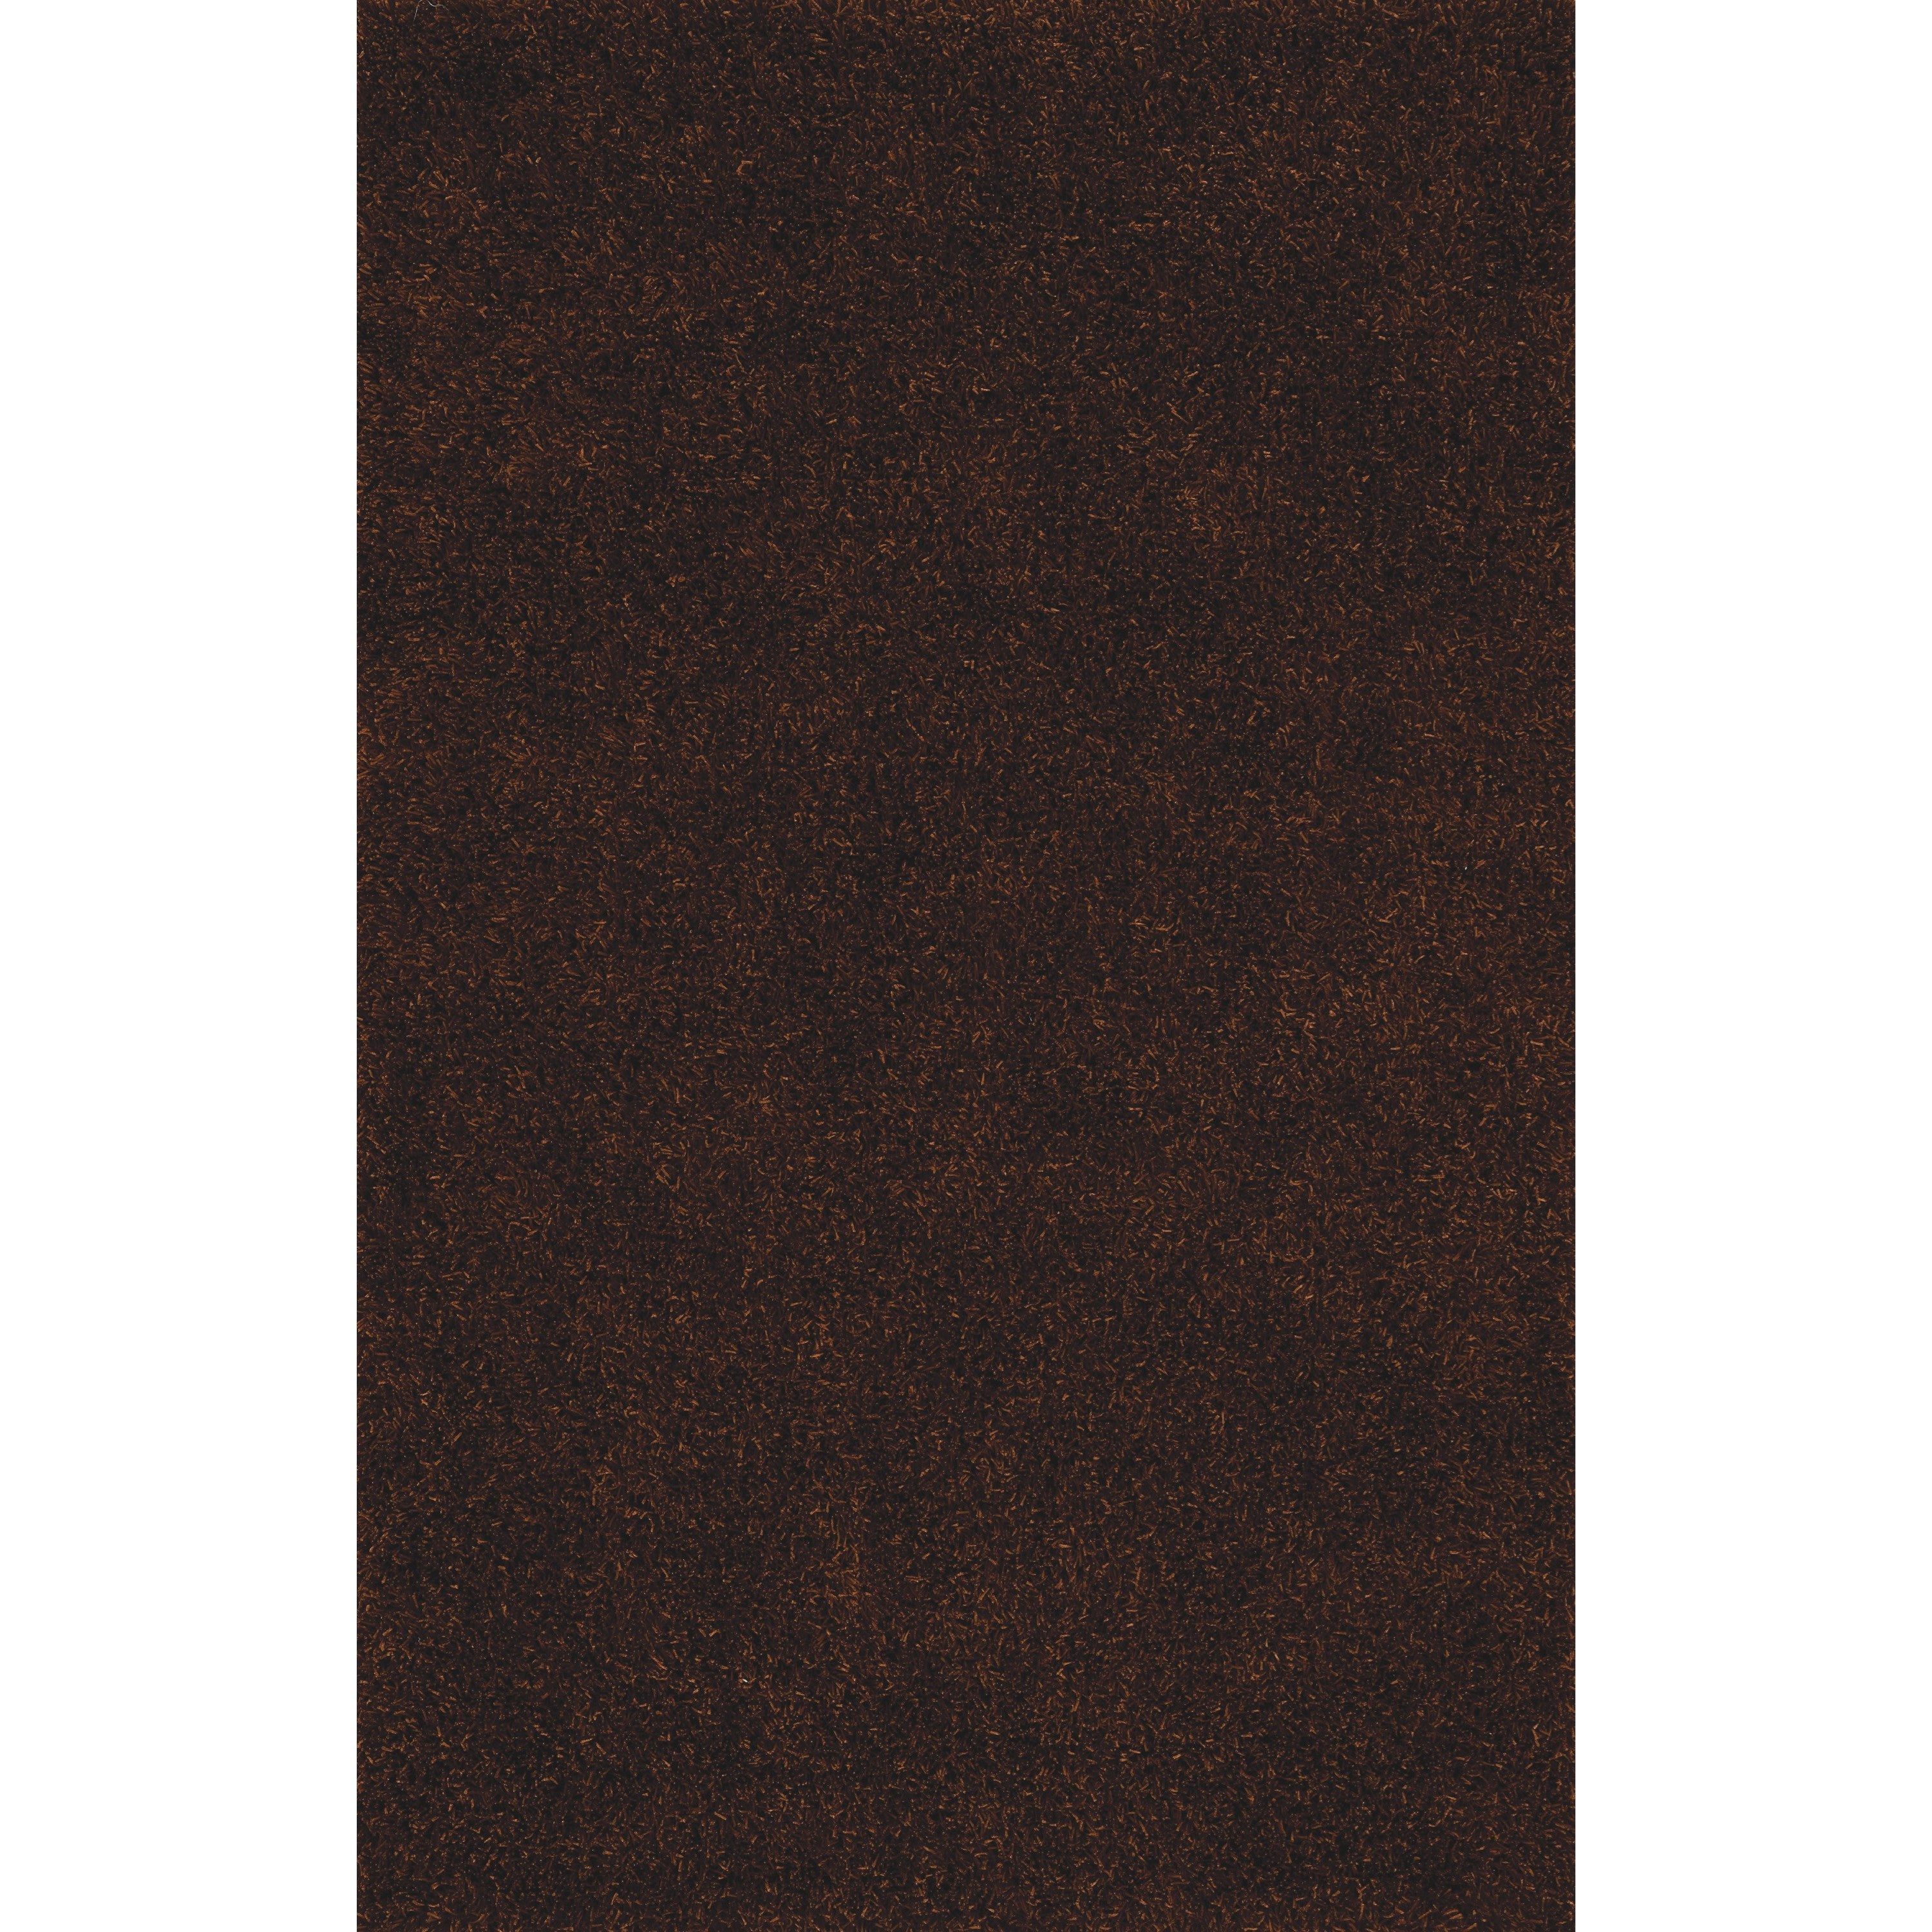 Dalyn Illusions Chocolate 8'X10' Rug - Item Number: IL69CH8X10